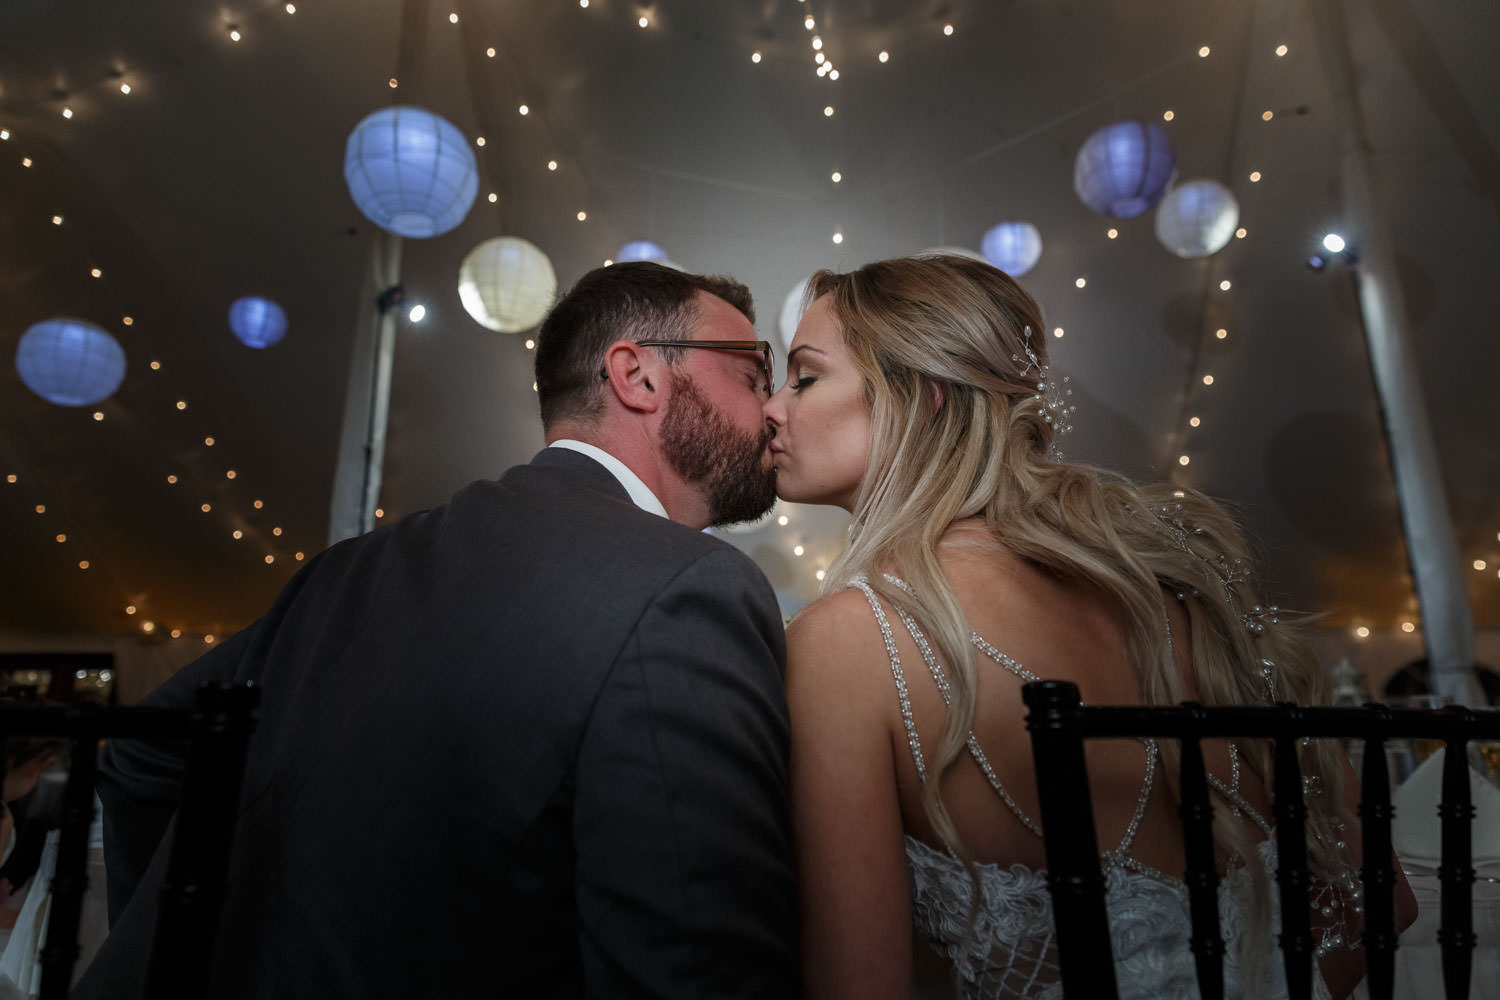 Bride and groom kissing with photo taken from behind couple with Chinese lanterns hanging in the background